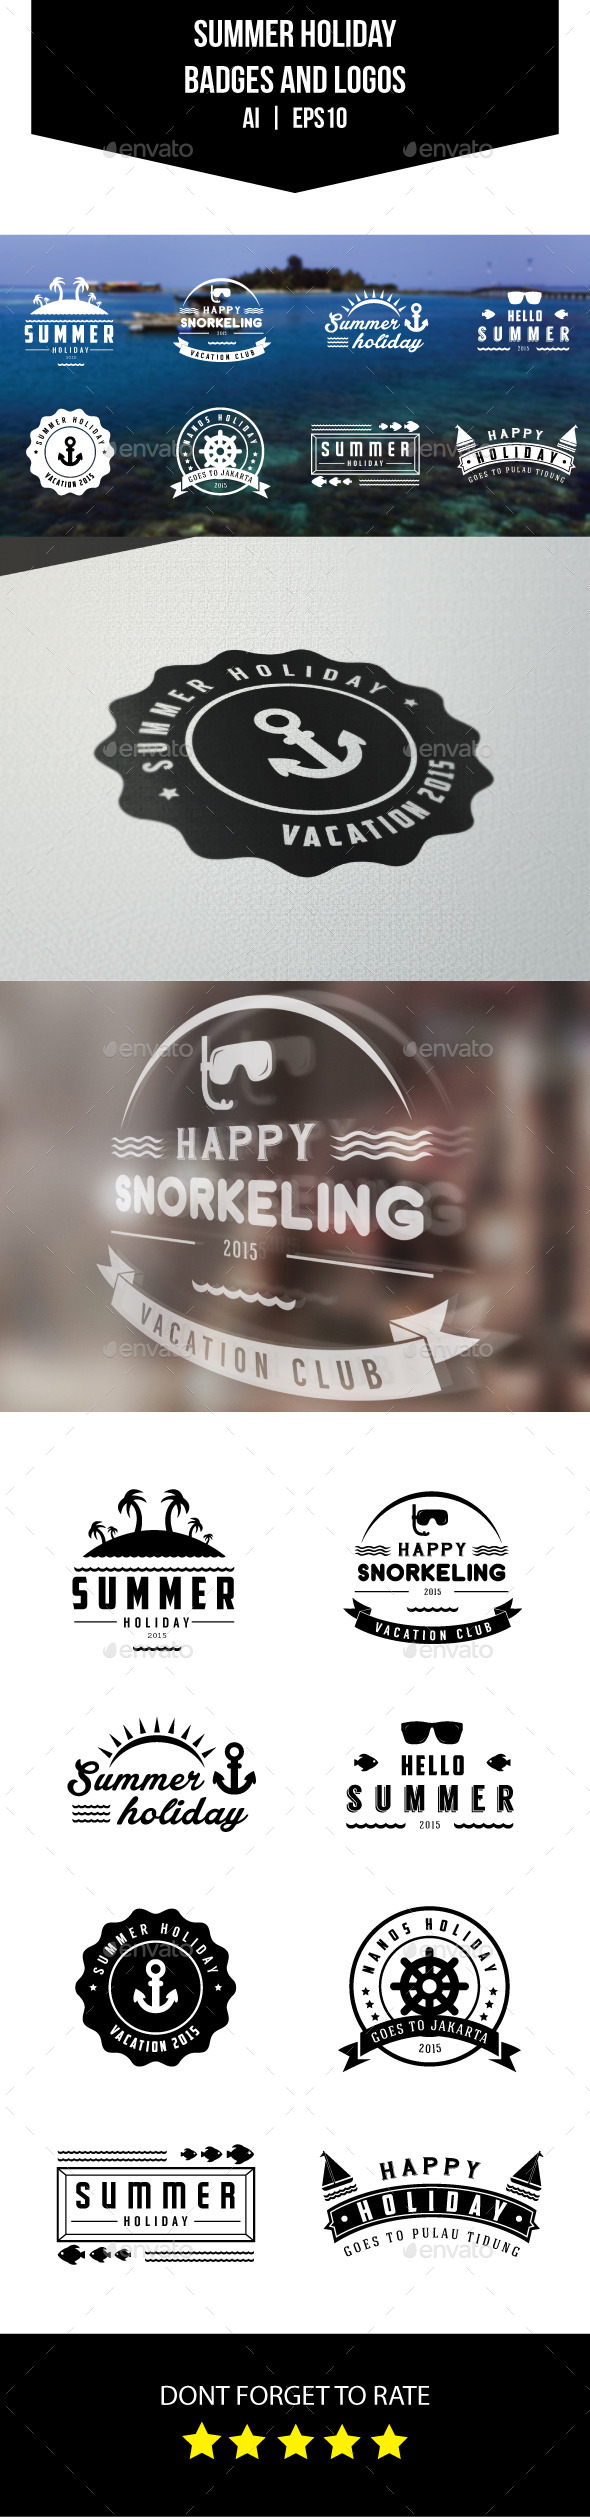 GraphicRiver Summer Holiday Badges and Logos 11569393